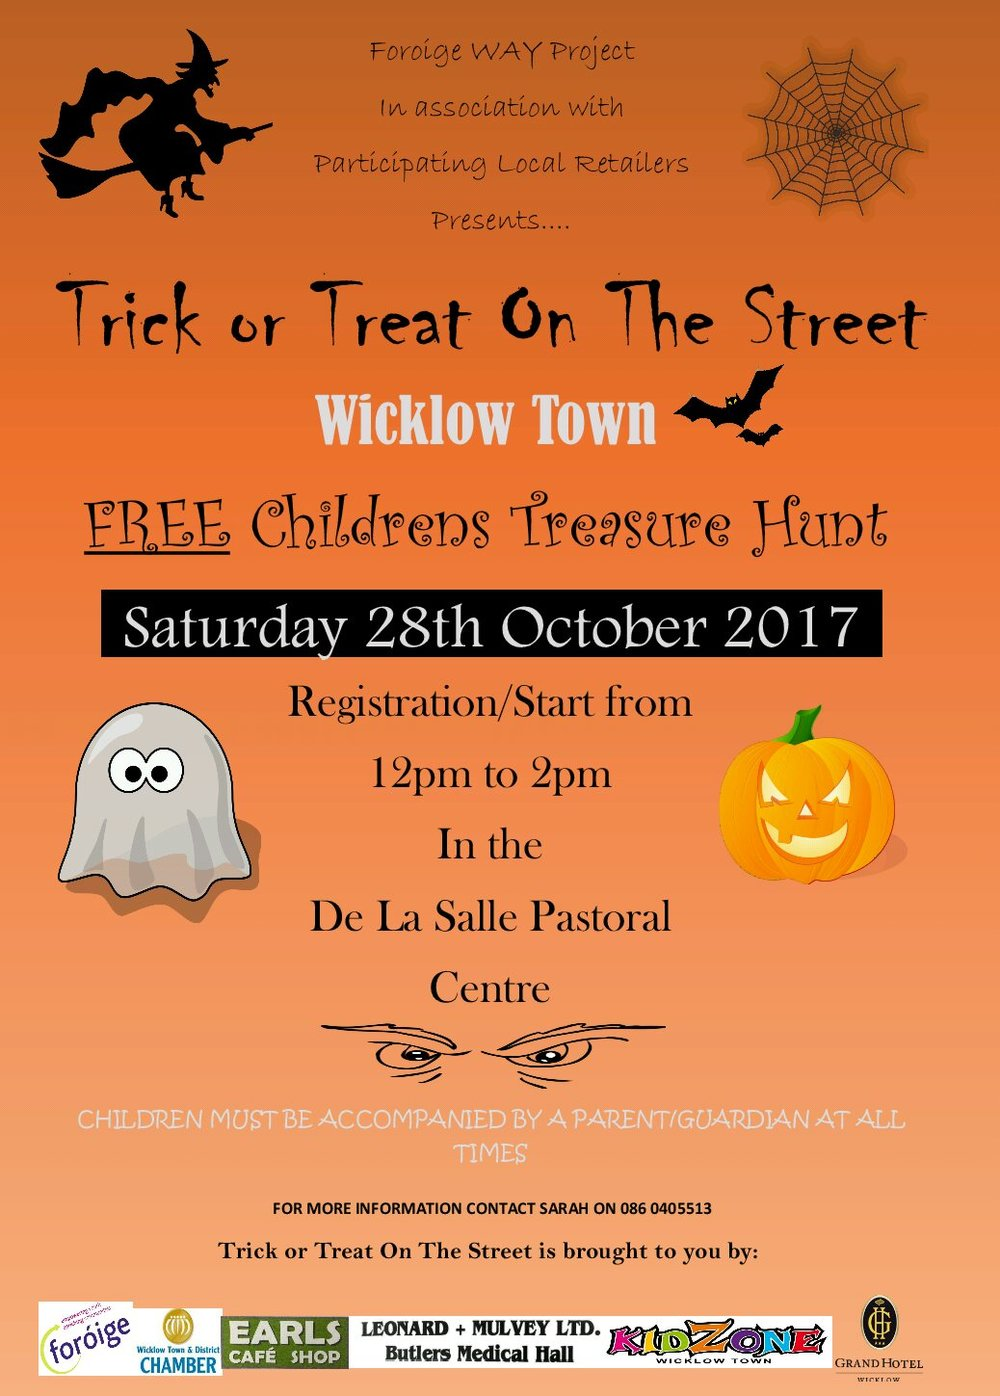 Trick or Treat Poster 2017.jpg